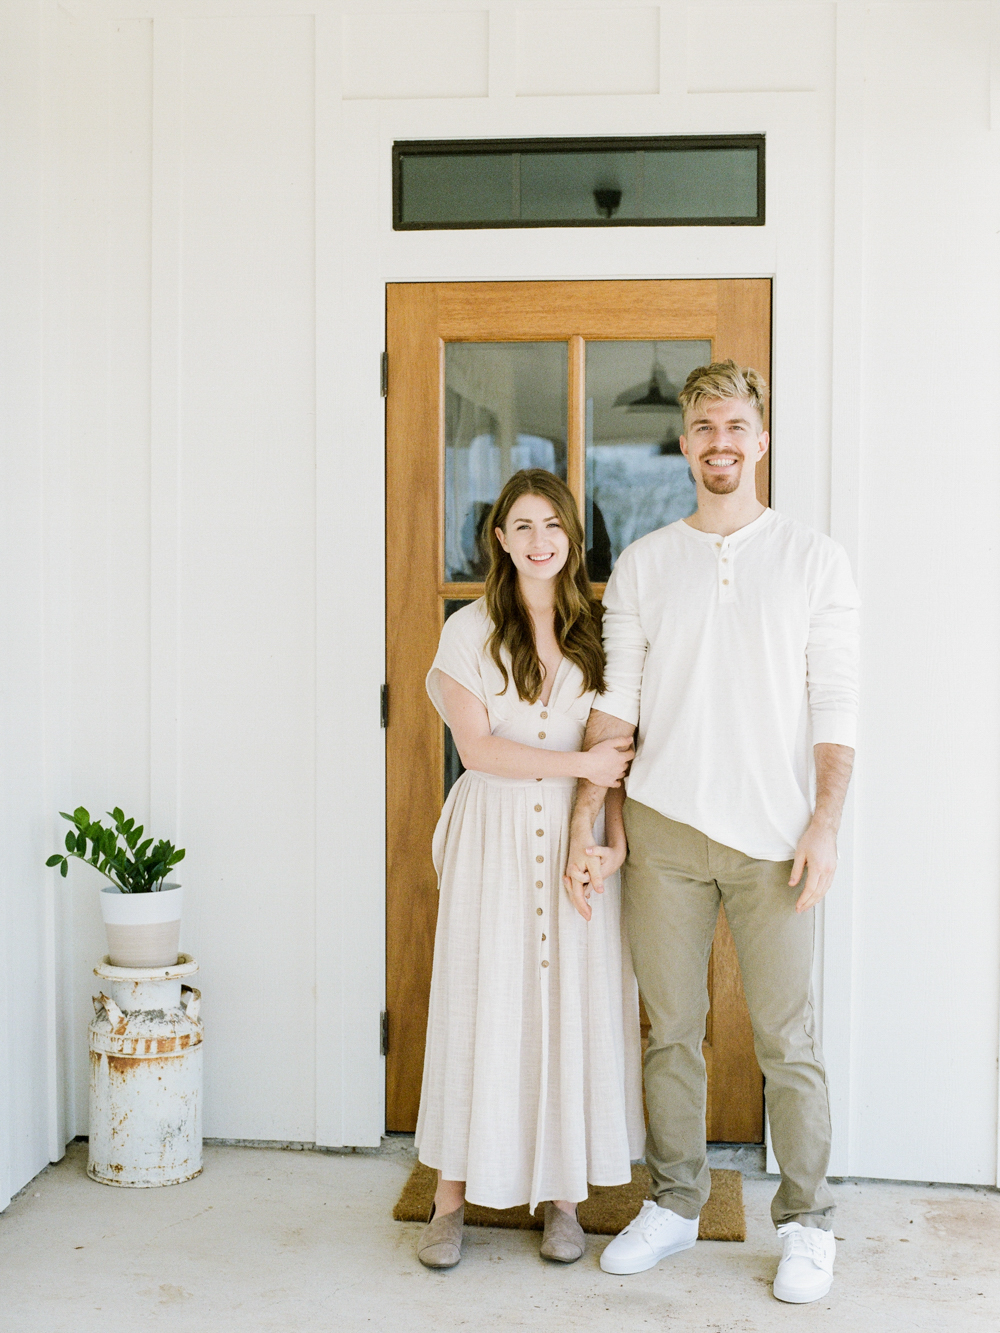 Christine Gosch - destination film photographer - houston wedding photographer - fine art film photographer - elopement photographer - destination wedding - understated wedding - simple beautiful wedding photography-2.jpg